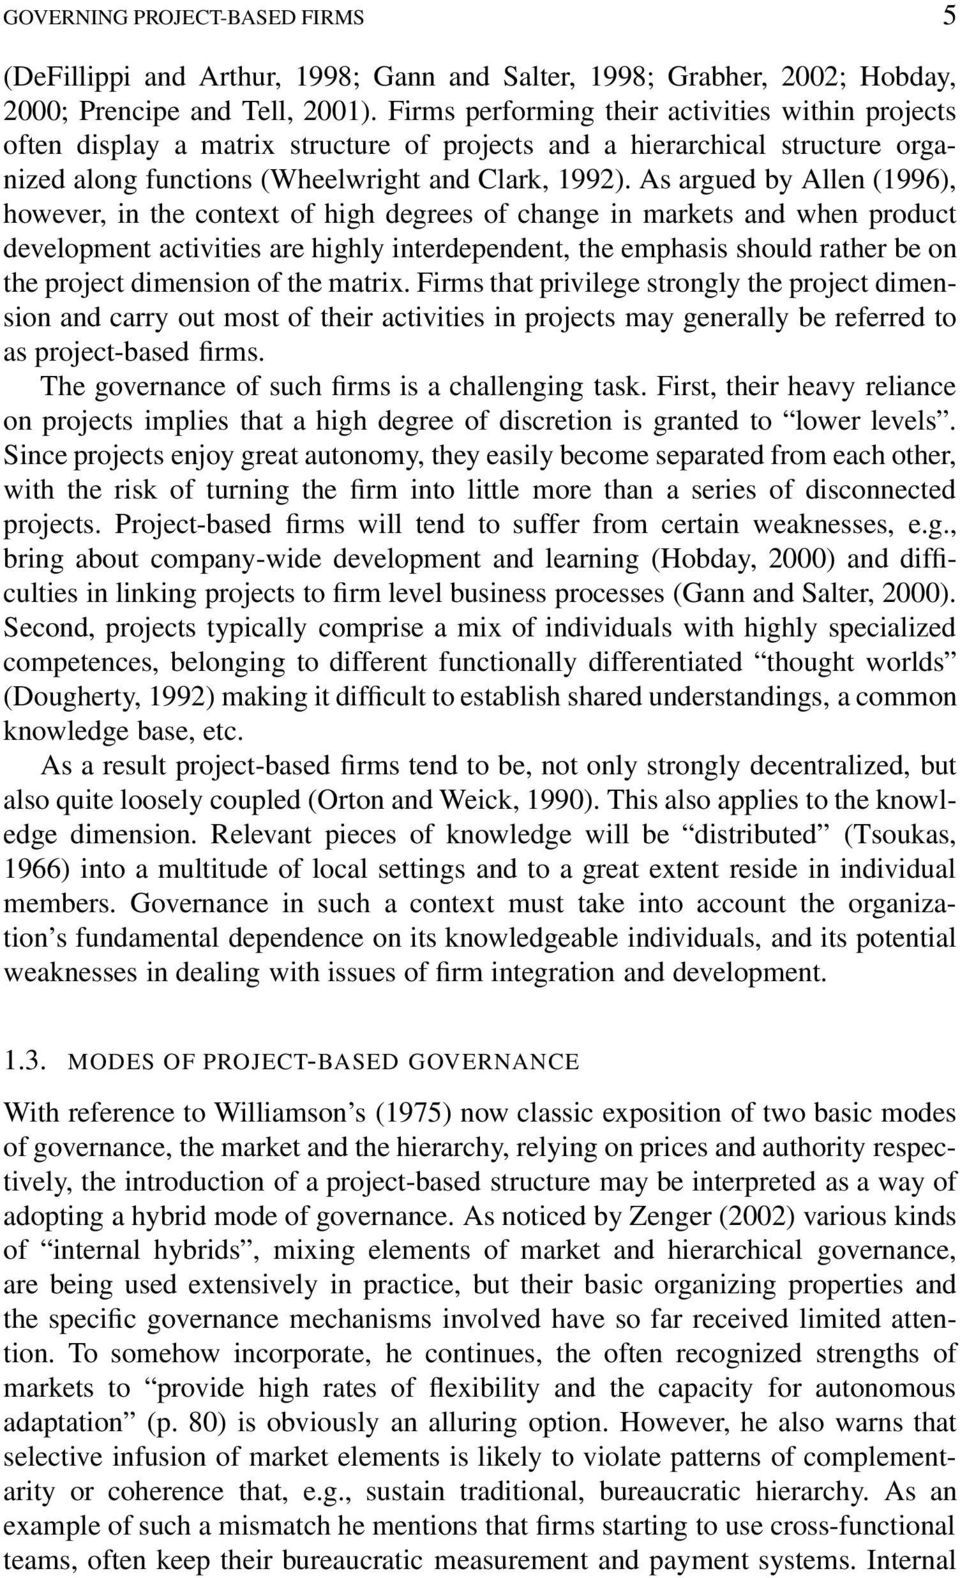 As argued by Allen (1996), however, in the context of high degrees of change in markets and when product development activities are highly interdependent, the emphasis should rather be on the project